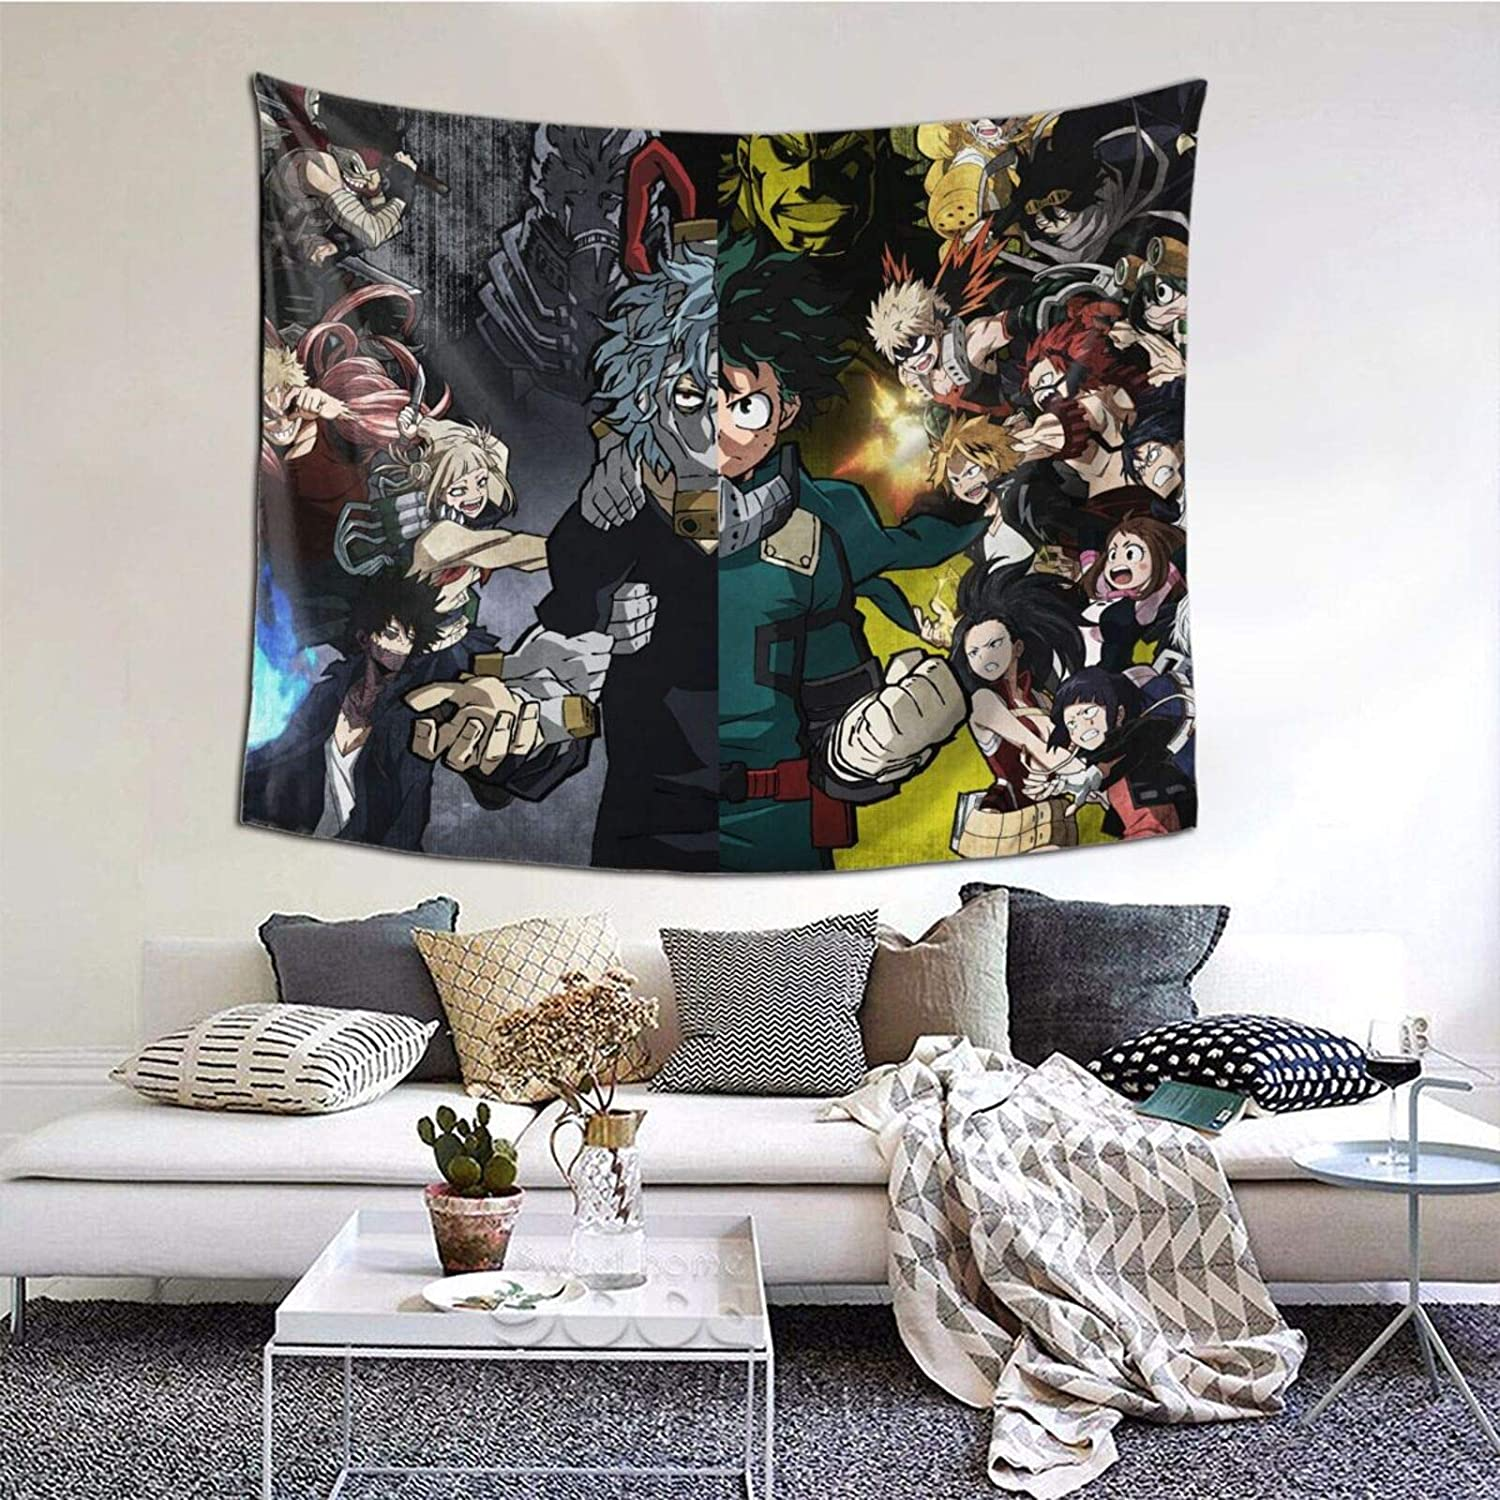 My H-ero A-cademia Tapestry - Wall Hanging Anime Tapestry Decoration for Party Bedroom Living Room 60 x 51 Inch